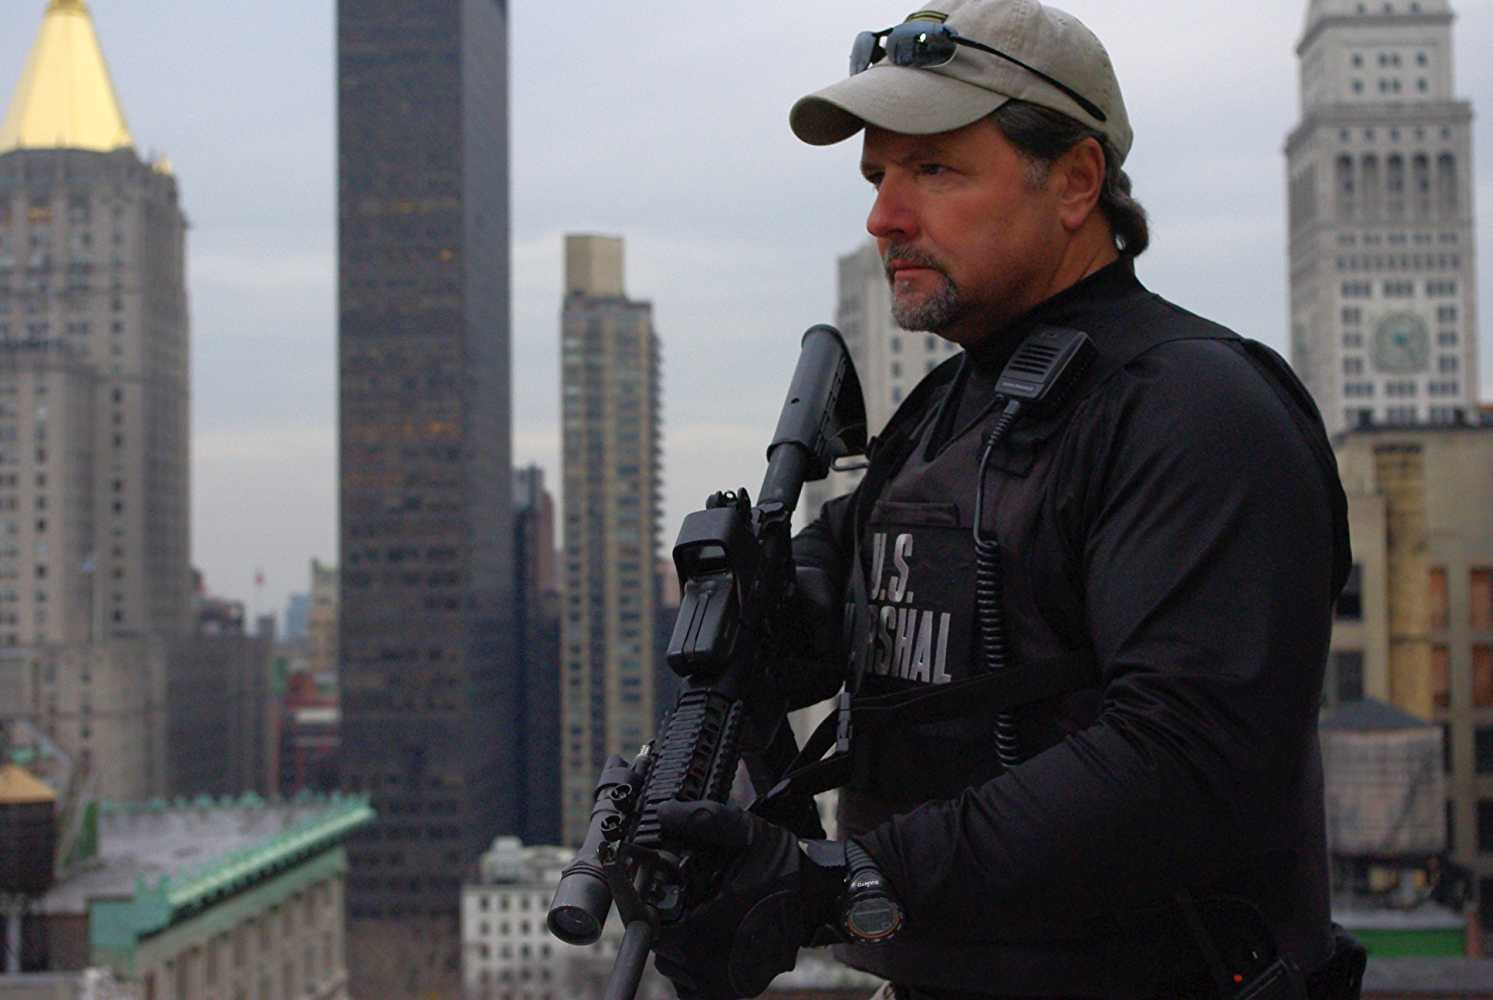 As Chief Inspector/Commander with the U.S. Marshal Joint Fugitive Task Force, Lenny DePaul (pictured) oversaw investigators from over 90 federal, state and local agencies on fugitive cases including narcotics warrants, criminal aliens, gangs, and weapons violators.  (IMDb)